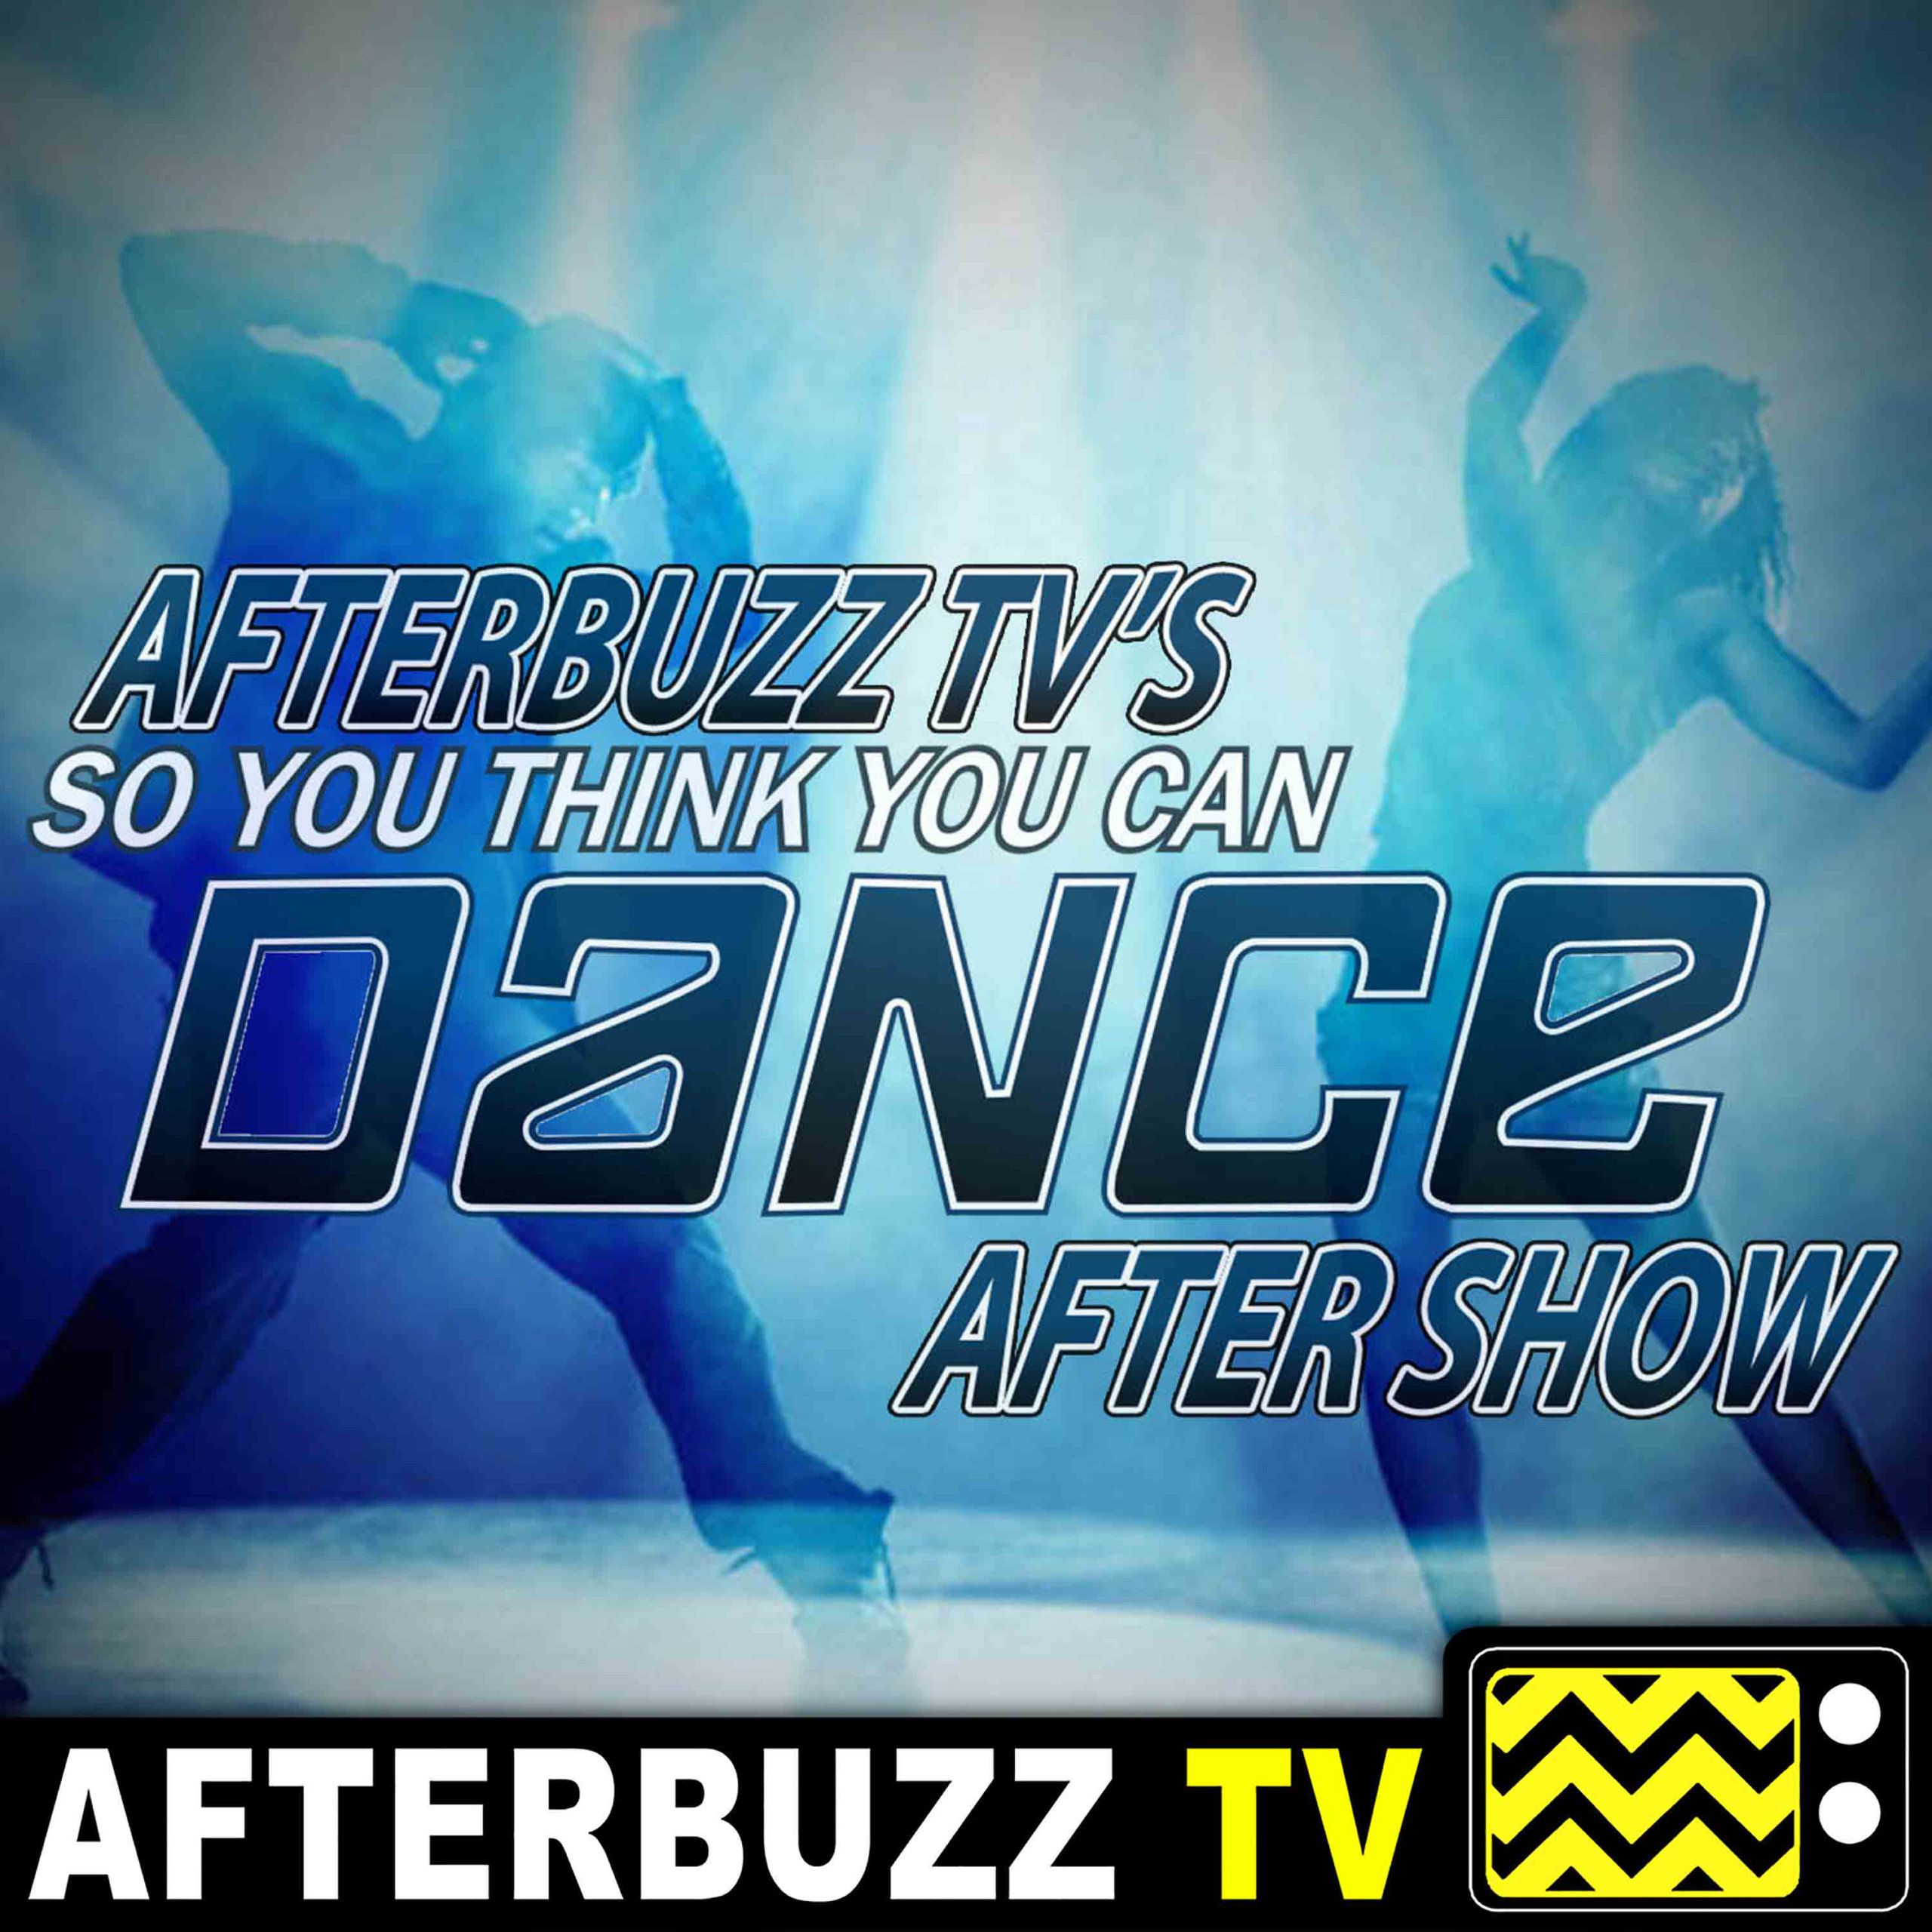 """Live Finale Winner Announced"""" Season 16 Episode 16 'So You Think You Can Dance' Review"